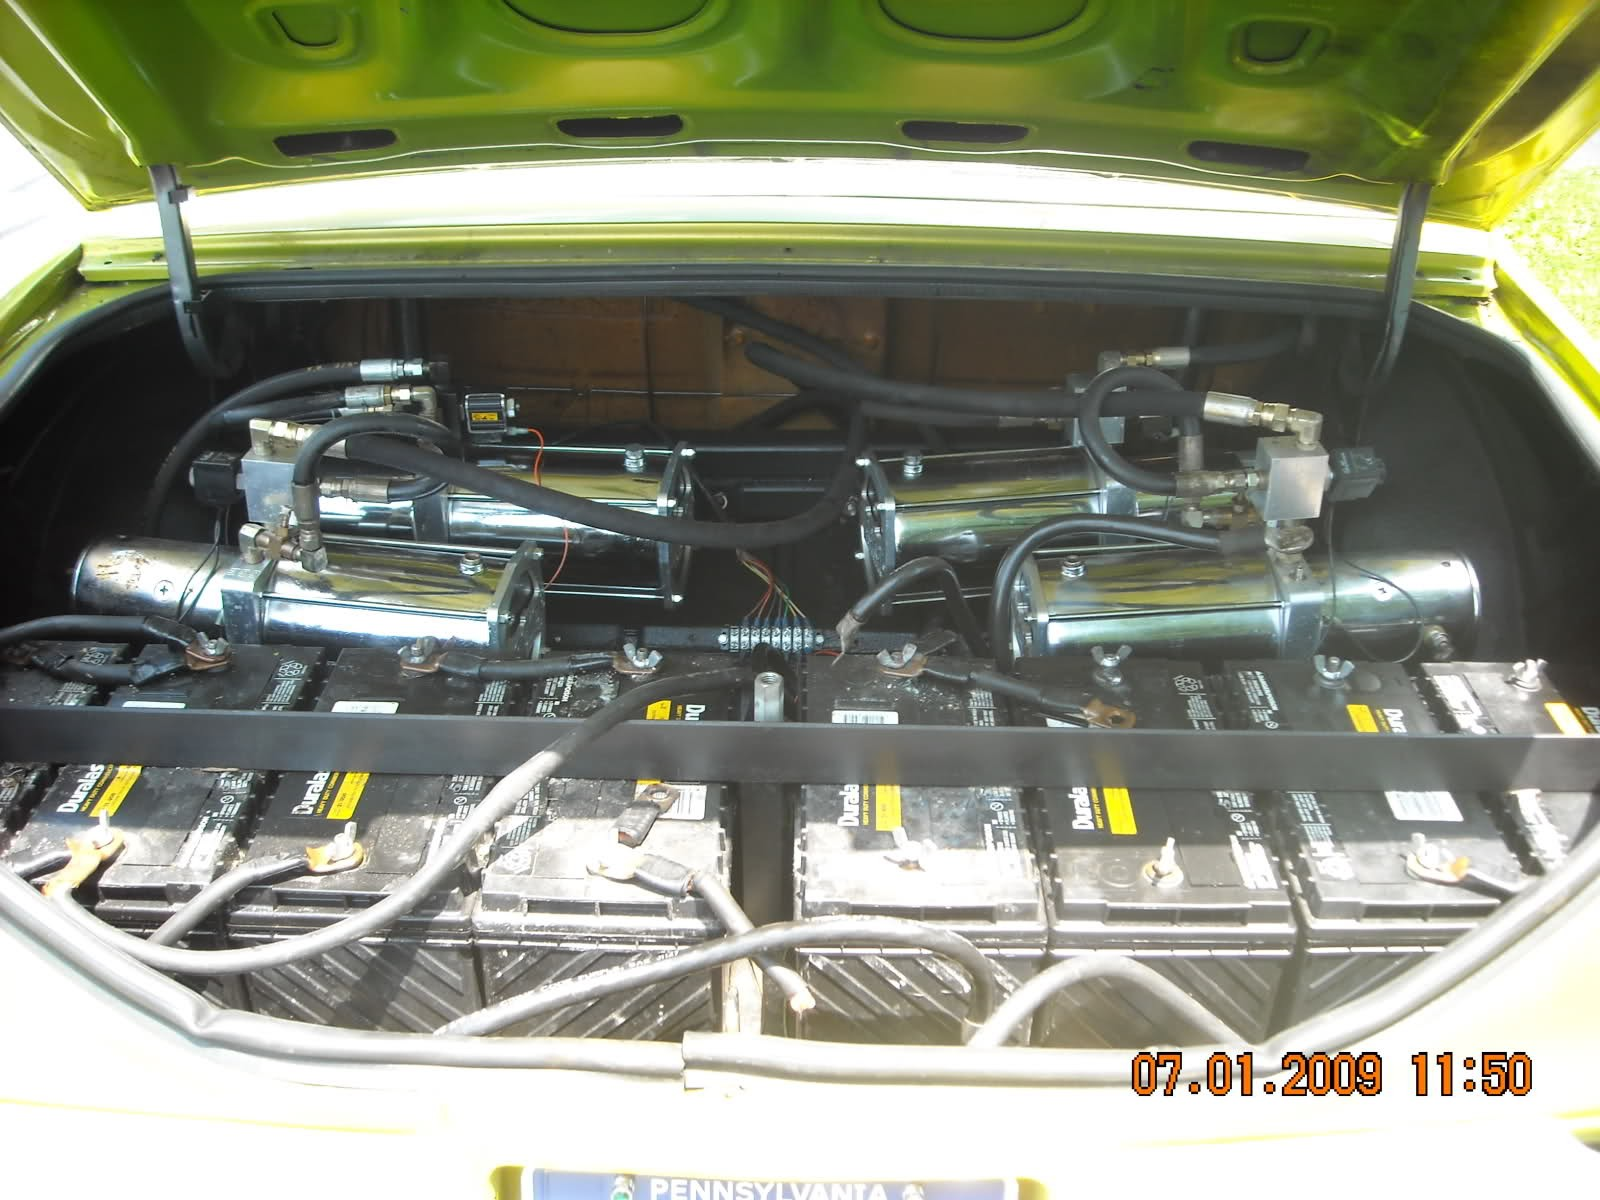 Lowrider Hydraulic Setup Diagram Just Bought Cutlass Hydros Need Help On Install Of Lowrider Hydraulic Setup Diagram